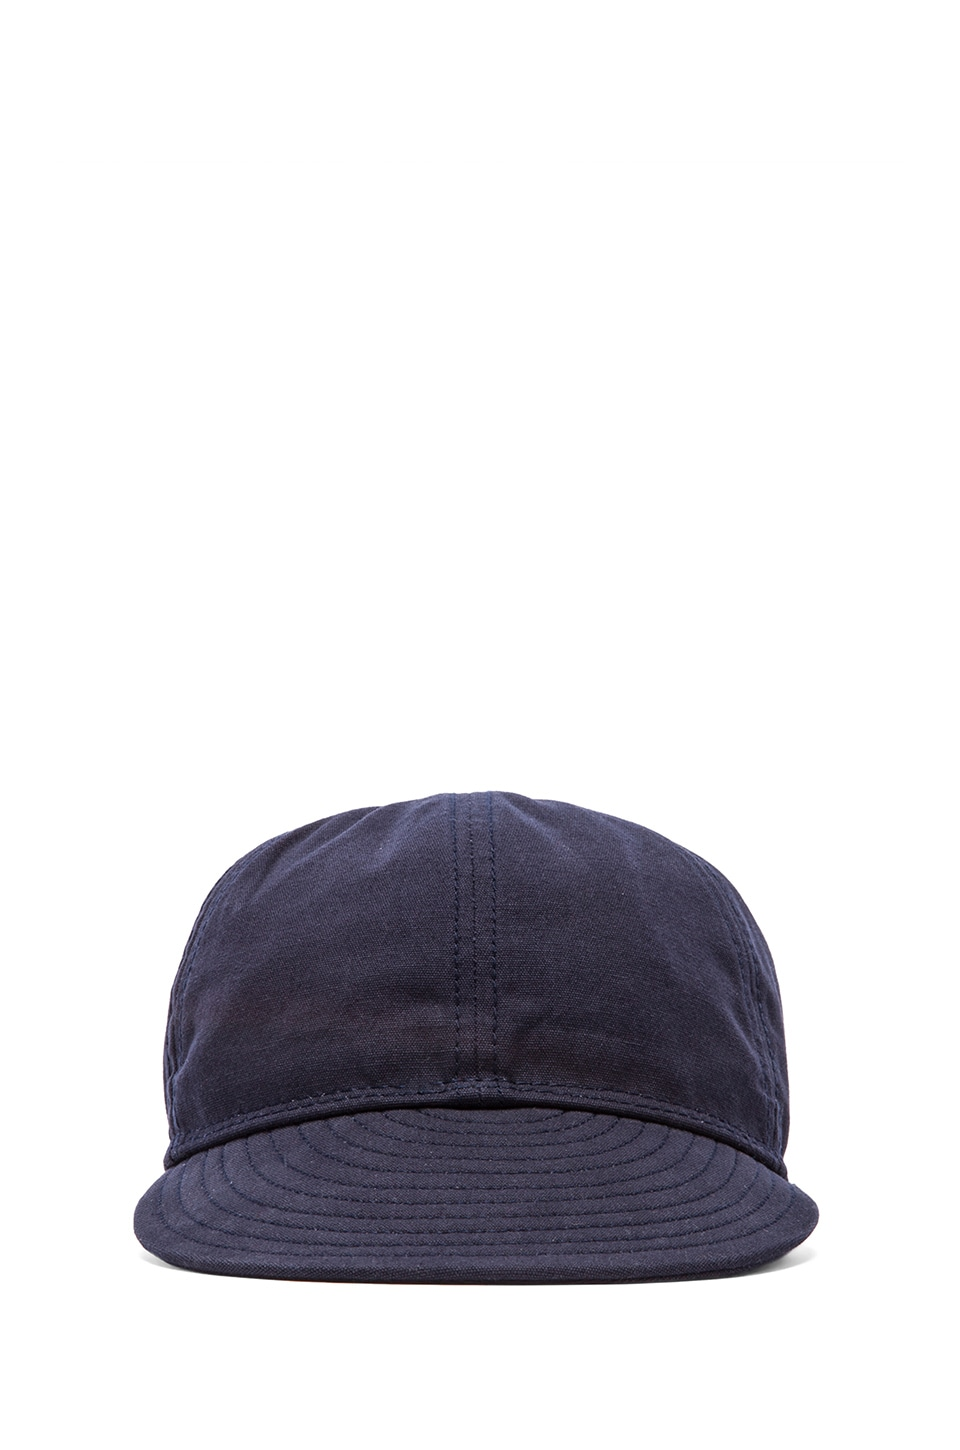 SATURDAYS NYC Field Hat in Navy